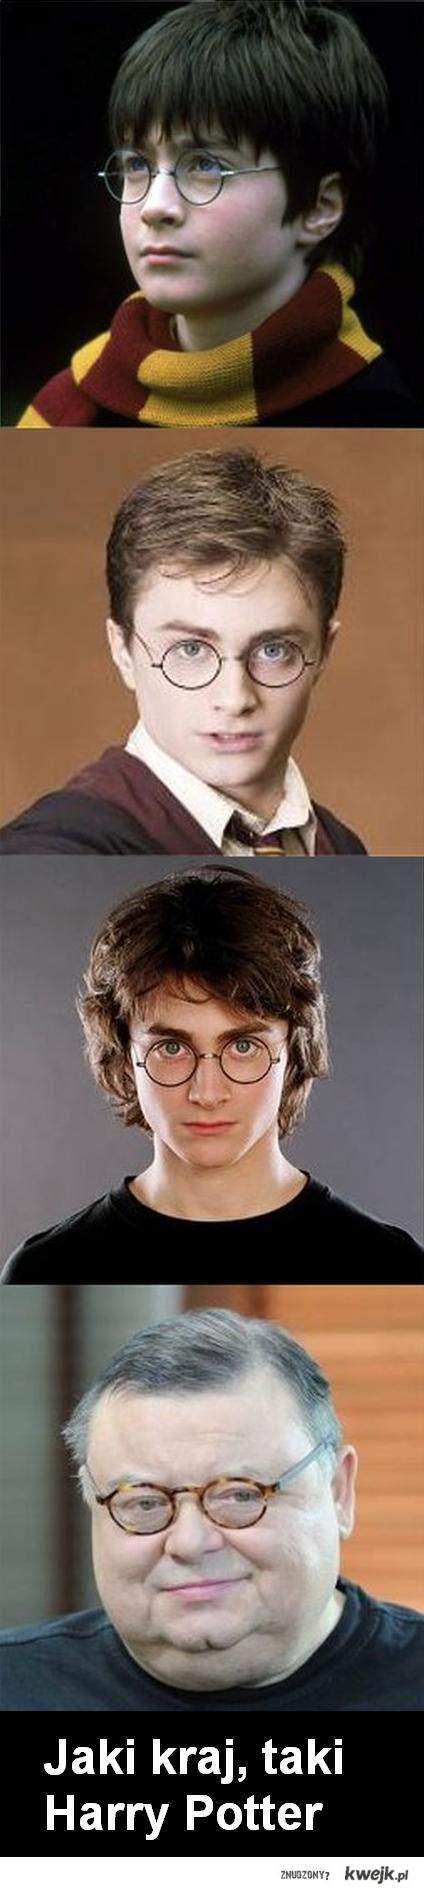 Jaki kraj, taki Harry Potter